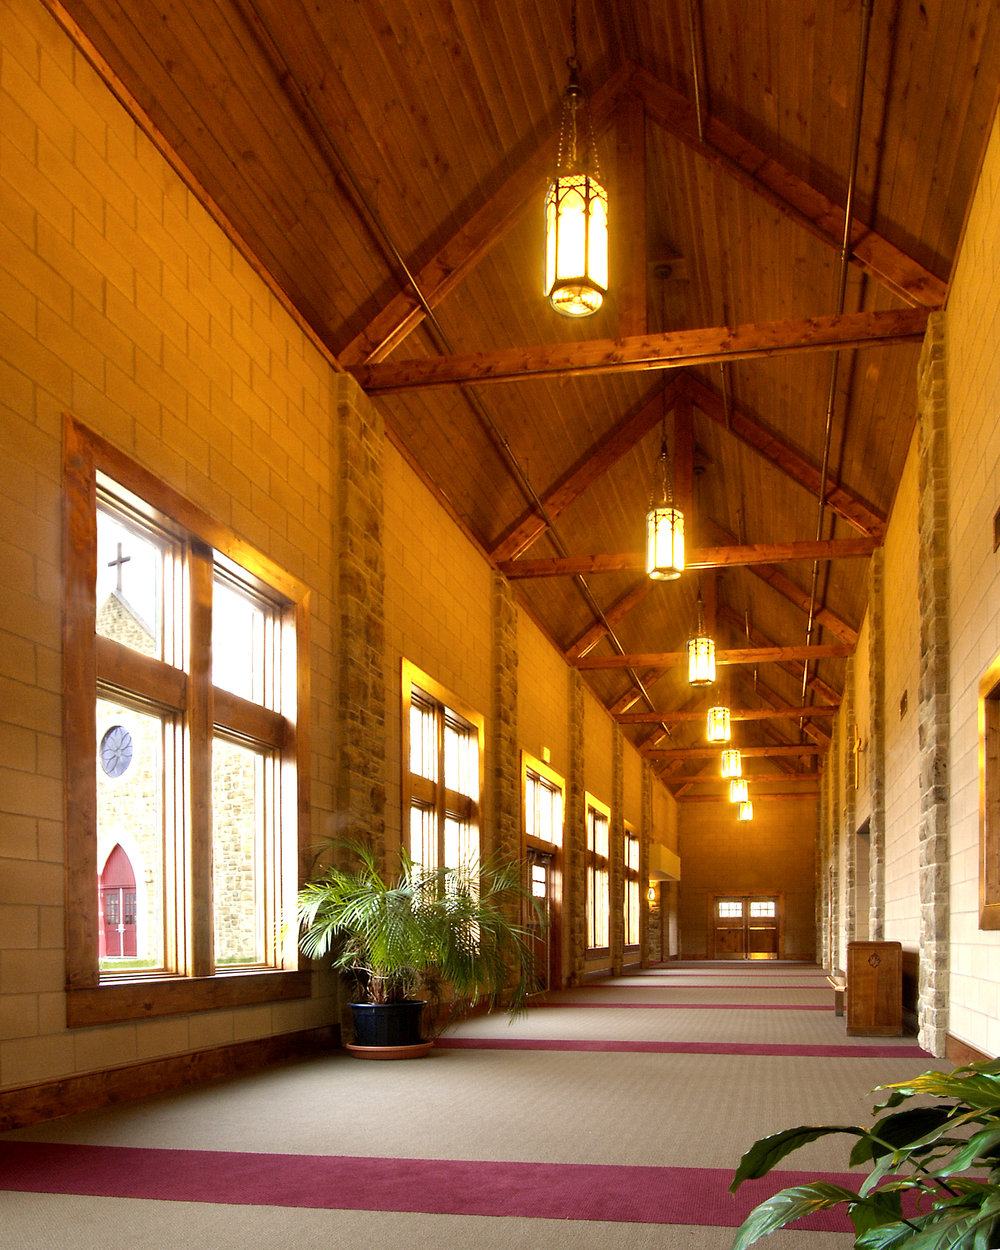 ADW-Faith-Based-St-Margaret-Episcopal-Church-Waxhaw-NC-Corridor.jpg